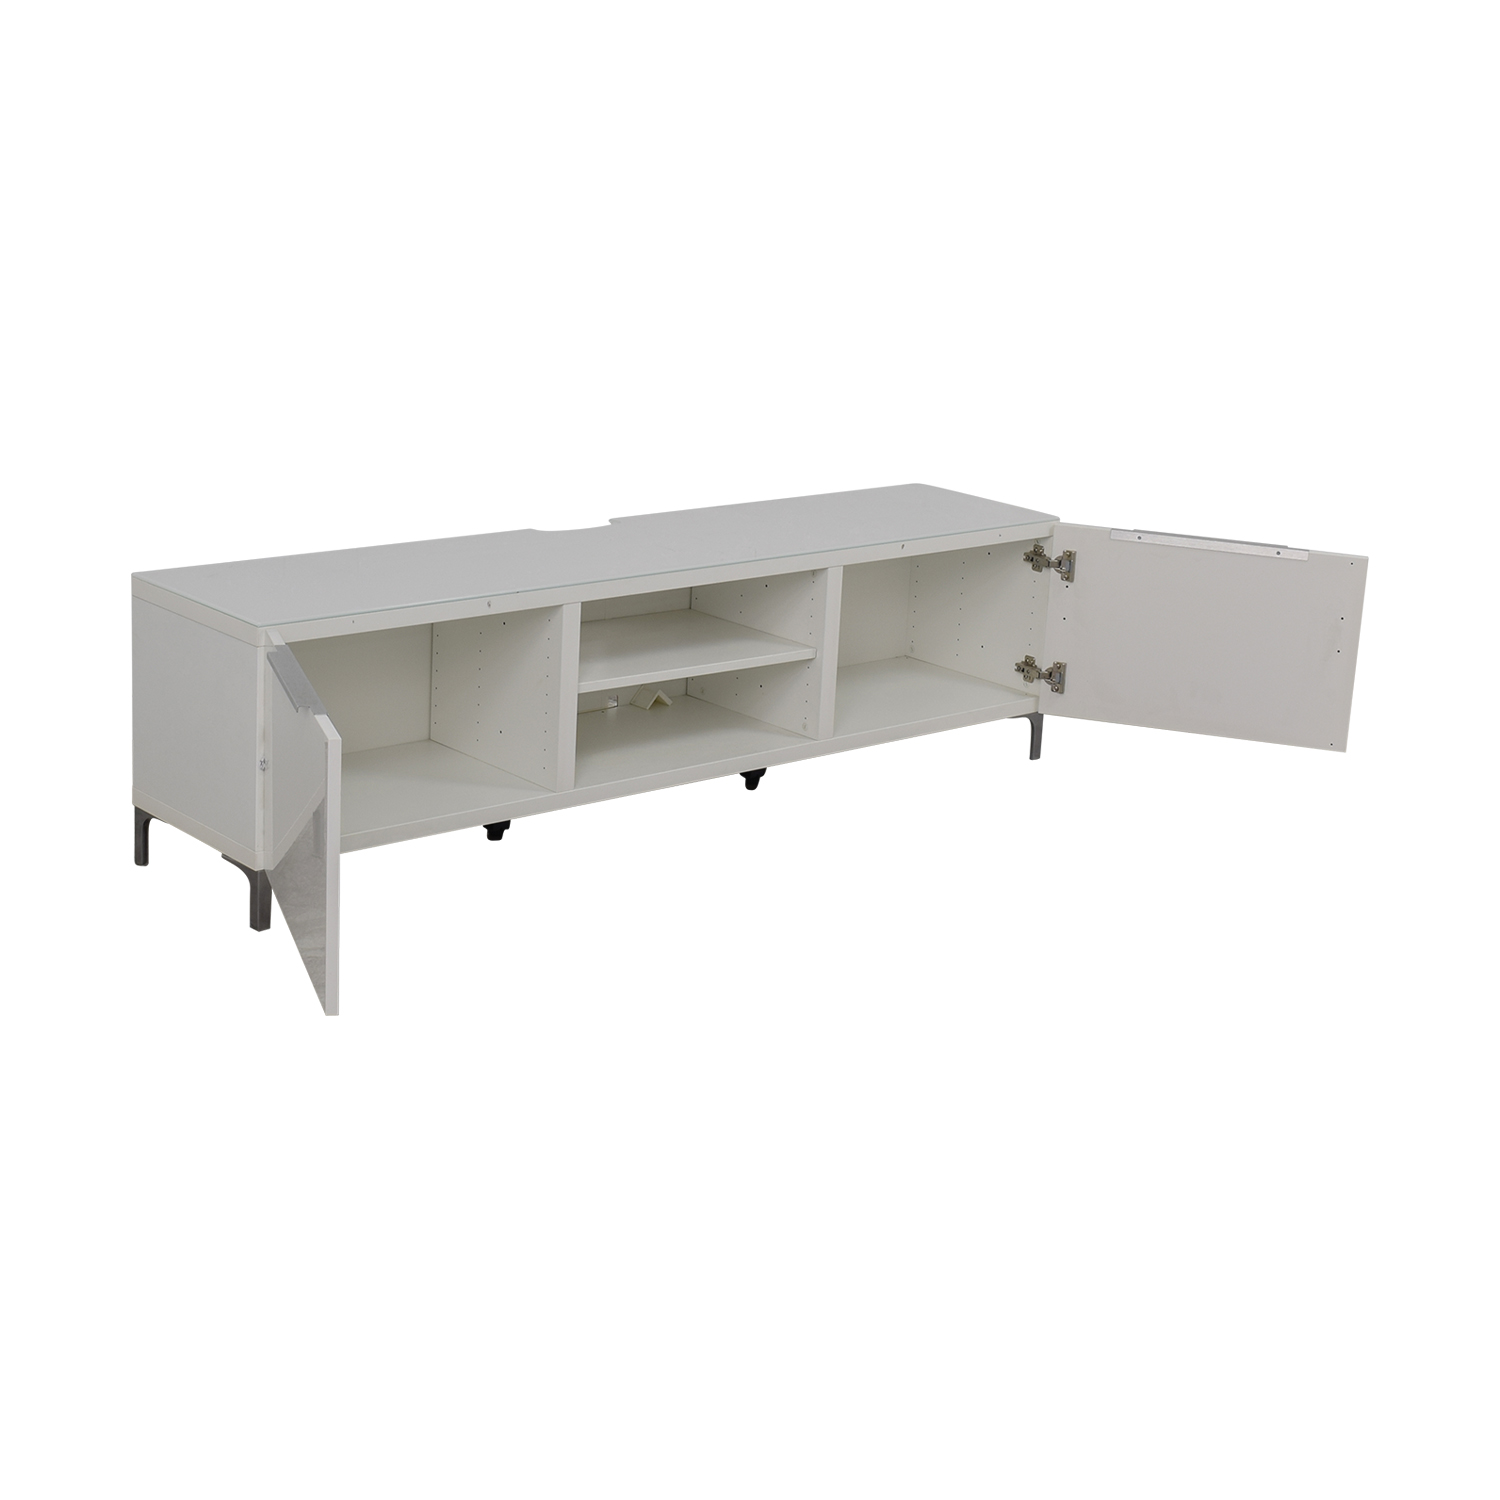 84 off ikea ikea white media console storage White media console